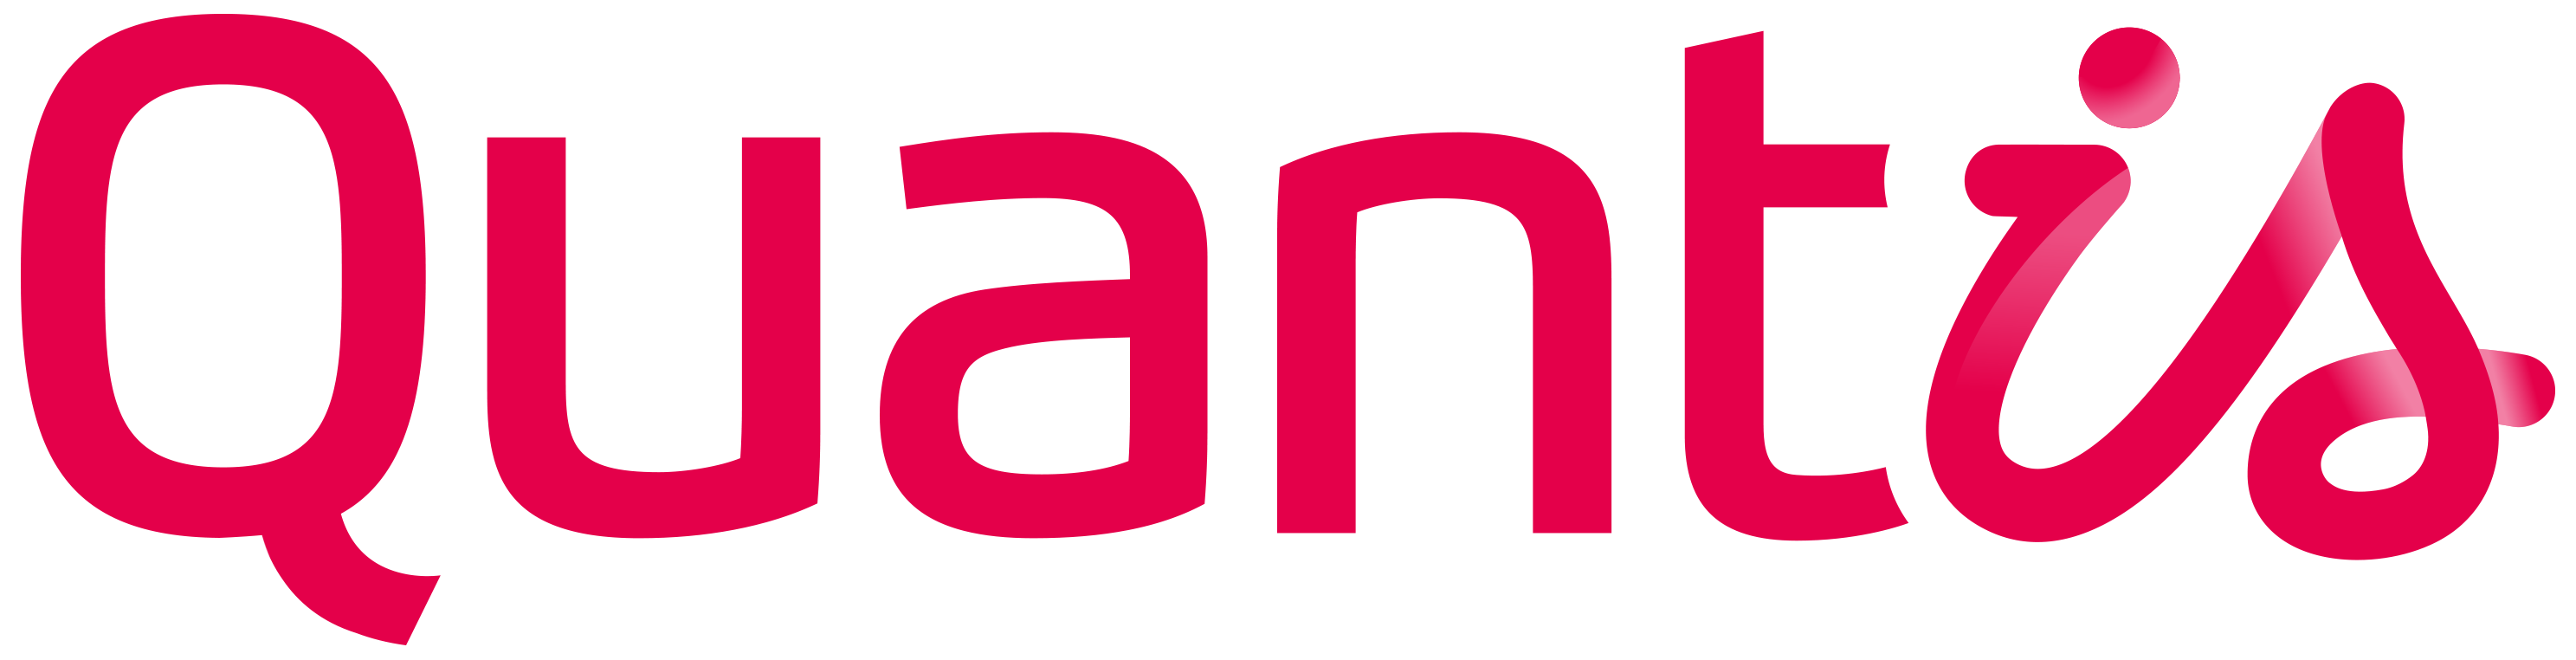 Image quantis logo red rgb transparent background